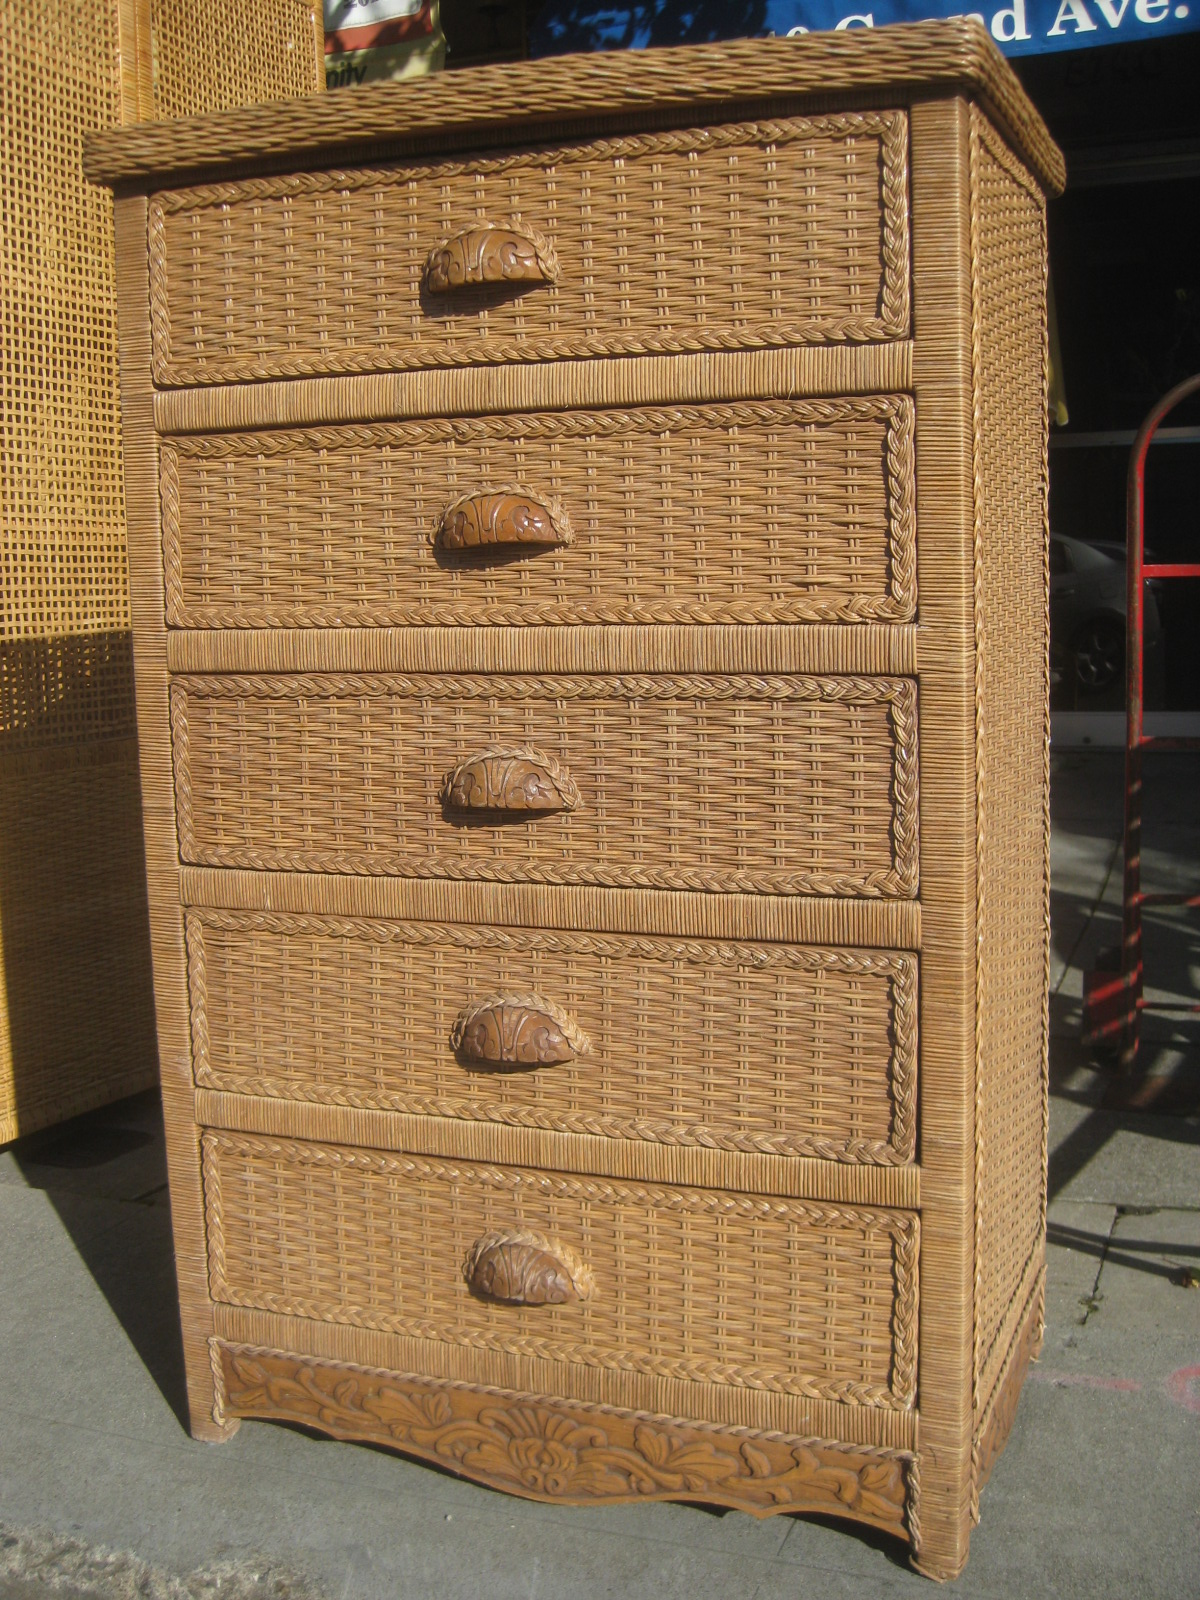 Uhuru furniture collectibles sold chest of drawers